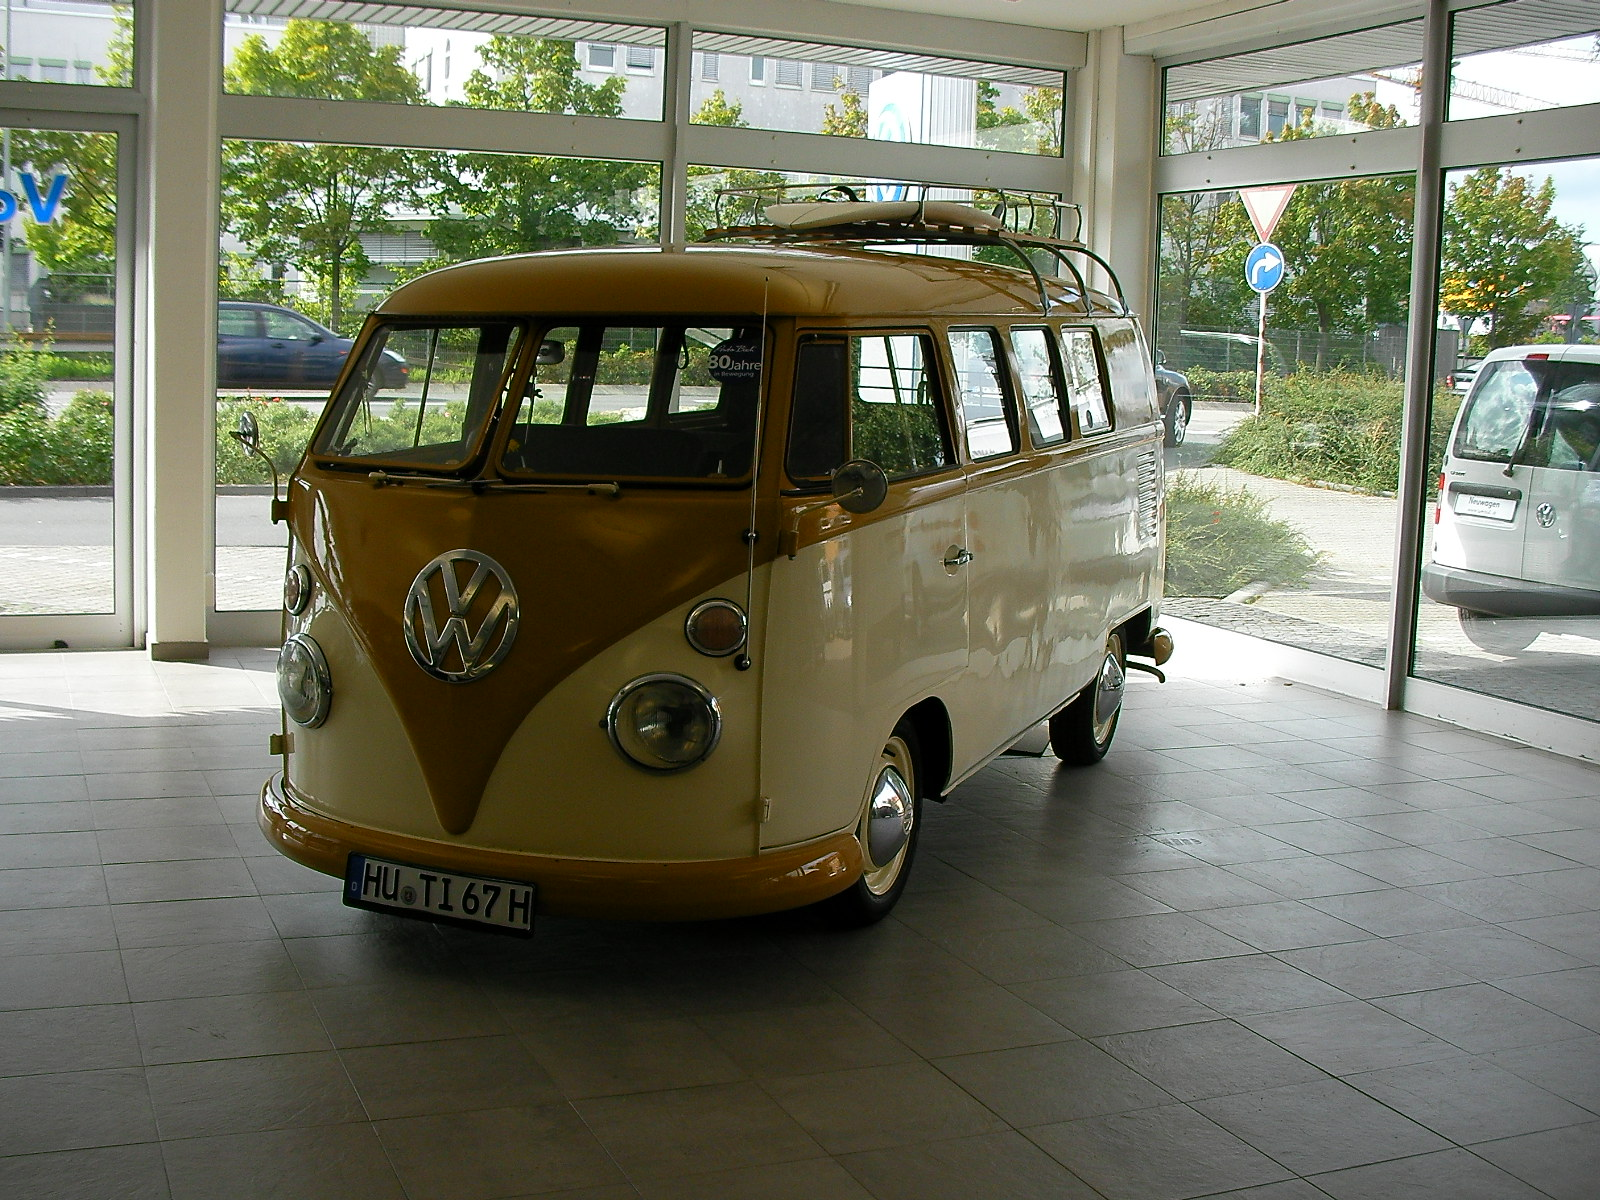 vintage volkswagen rusted by the rain 80 jahre auto bach bad homburg. Black Bedroom Furniture Sets. Home Design Ideas